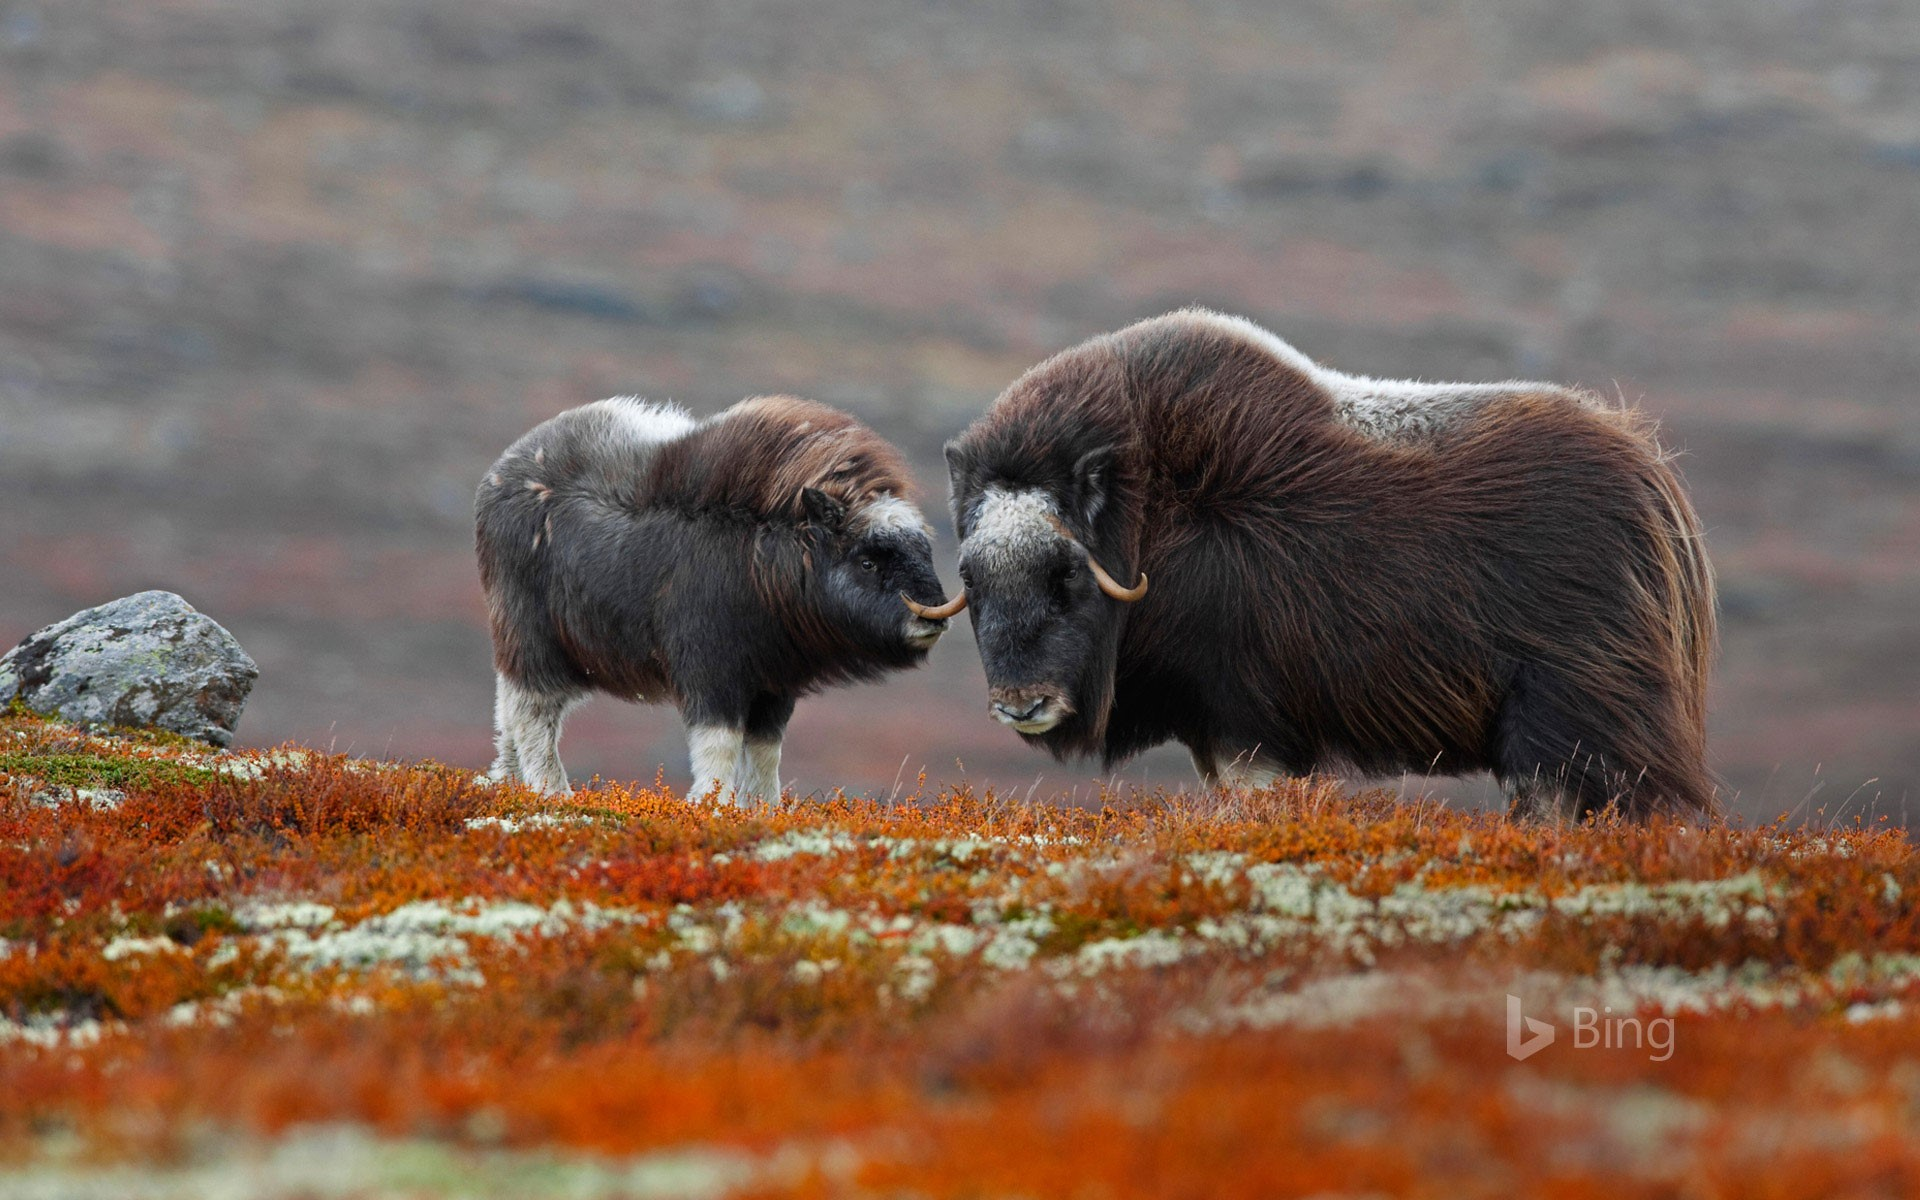 A muskox and her calf in Dovrefjell-Sunndalsfjella National Park, Norway